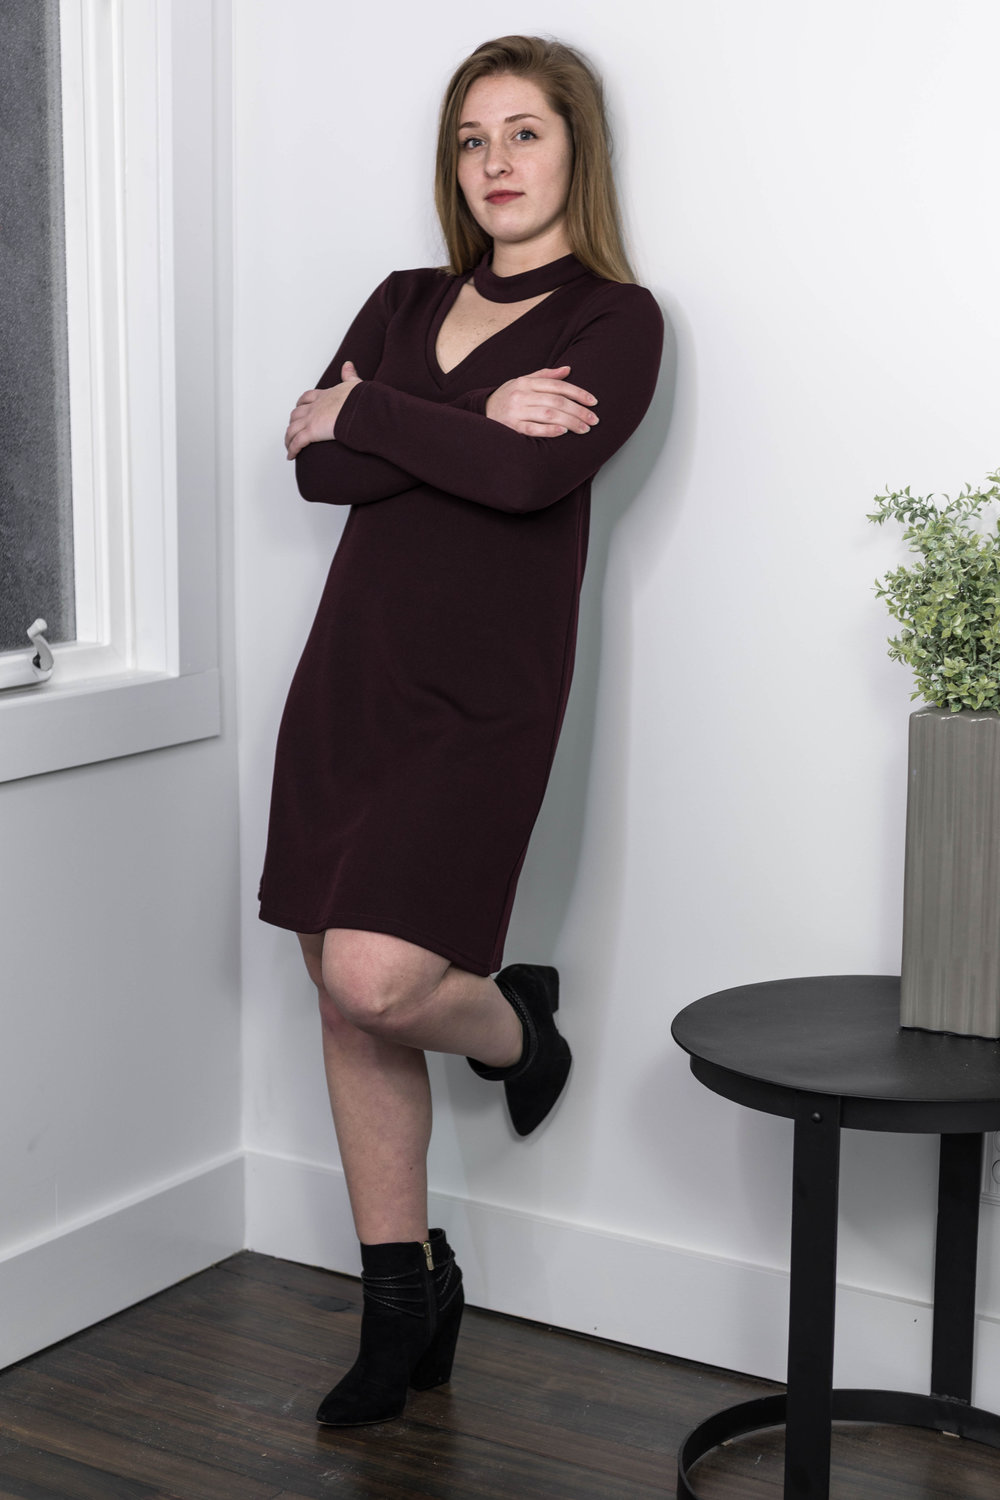 Saddie Knit Dress, reviewed by Hannah L.